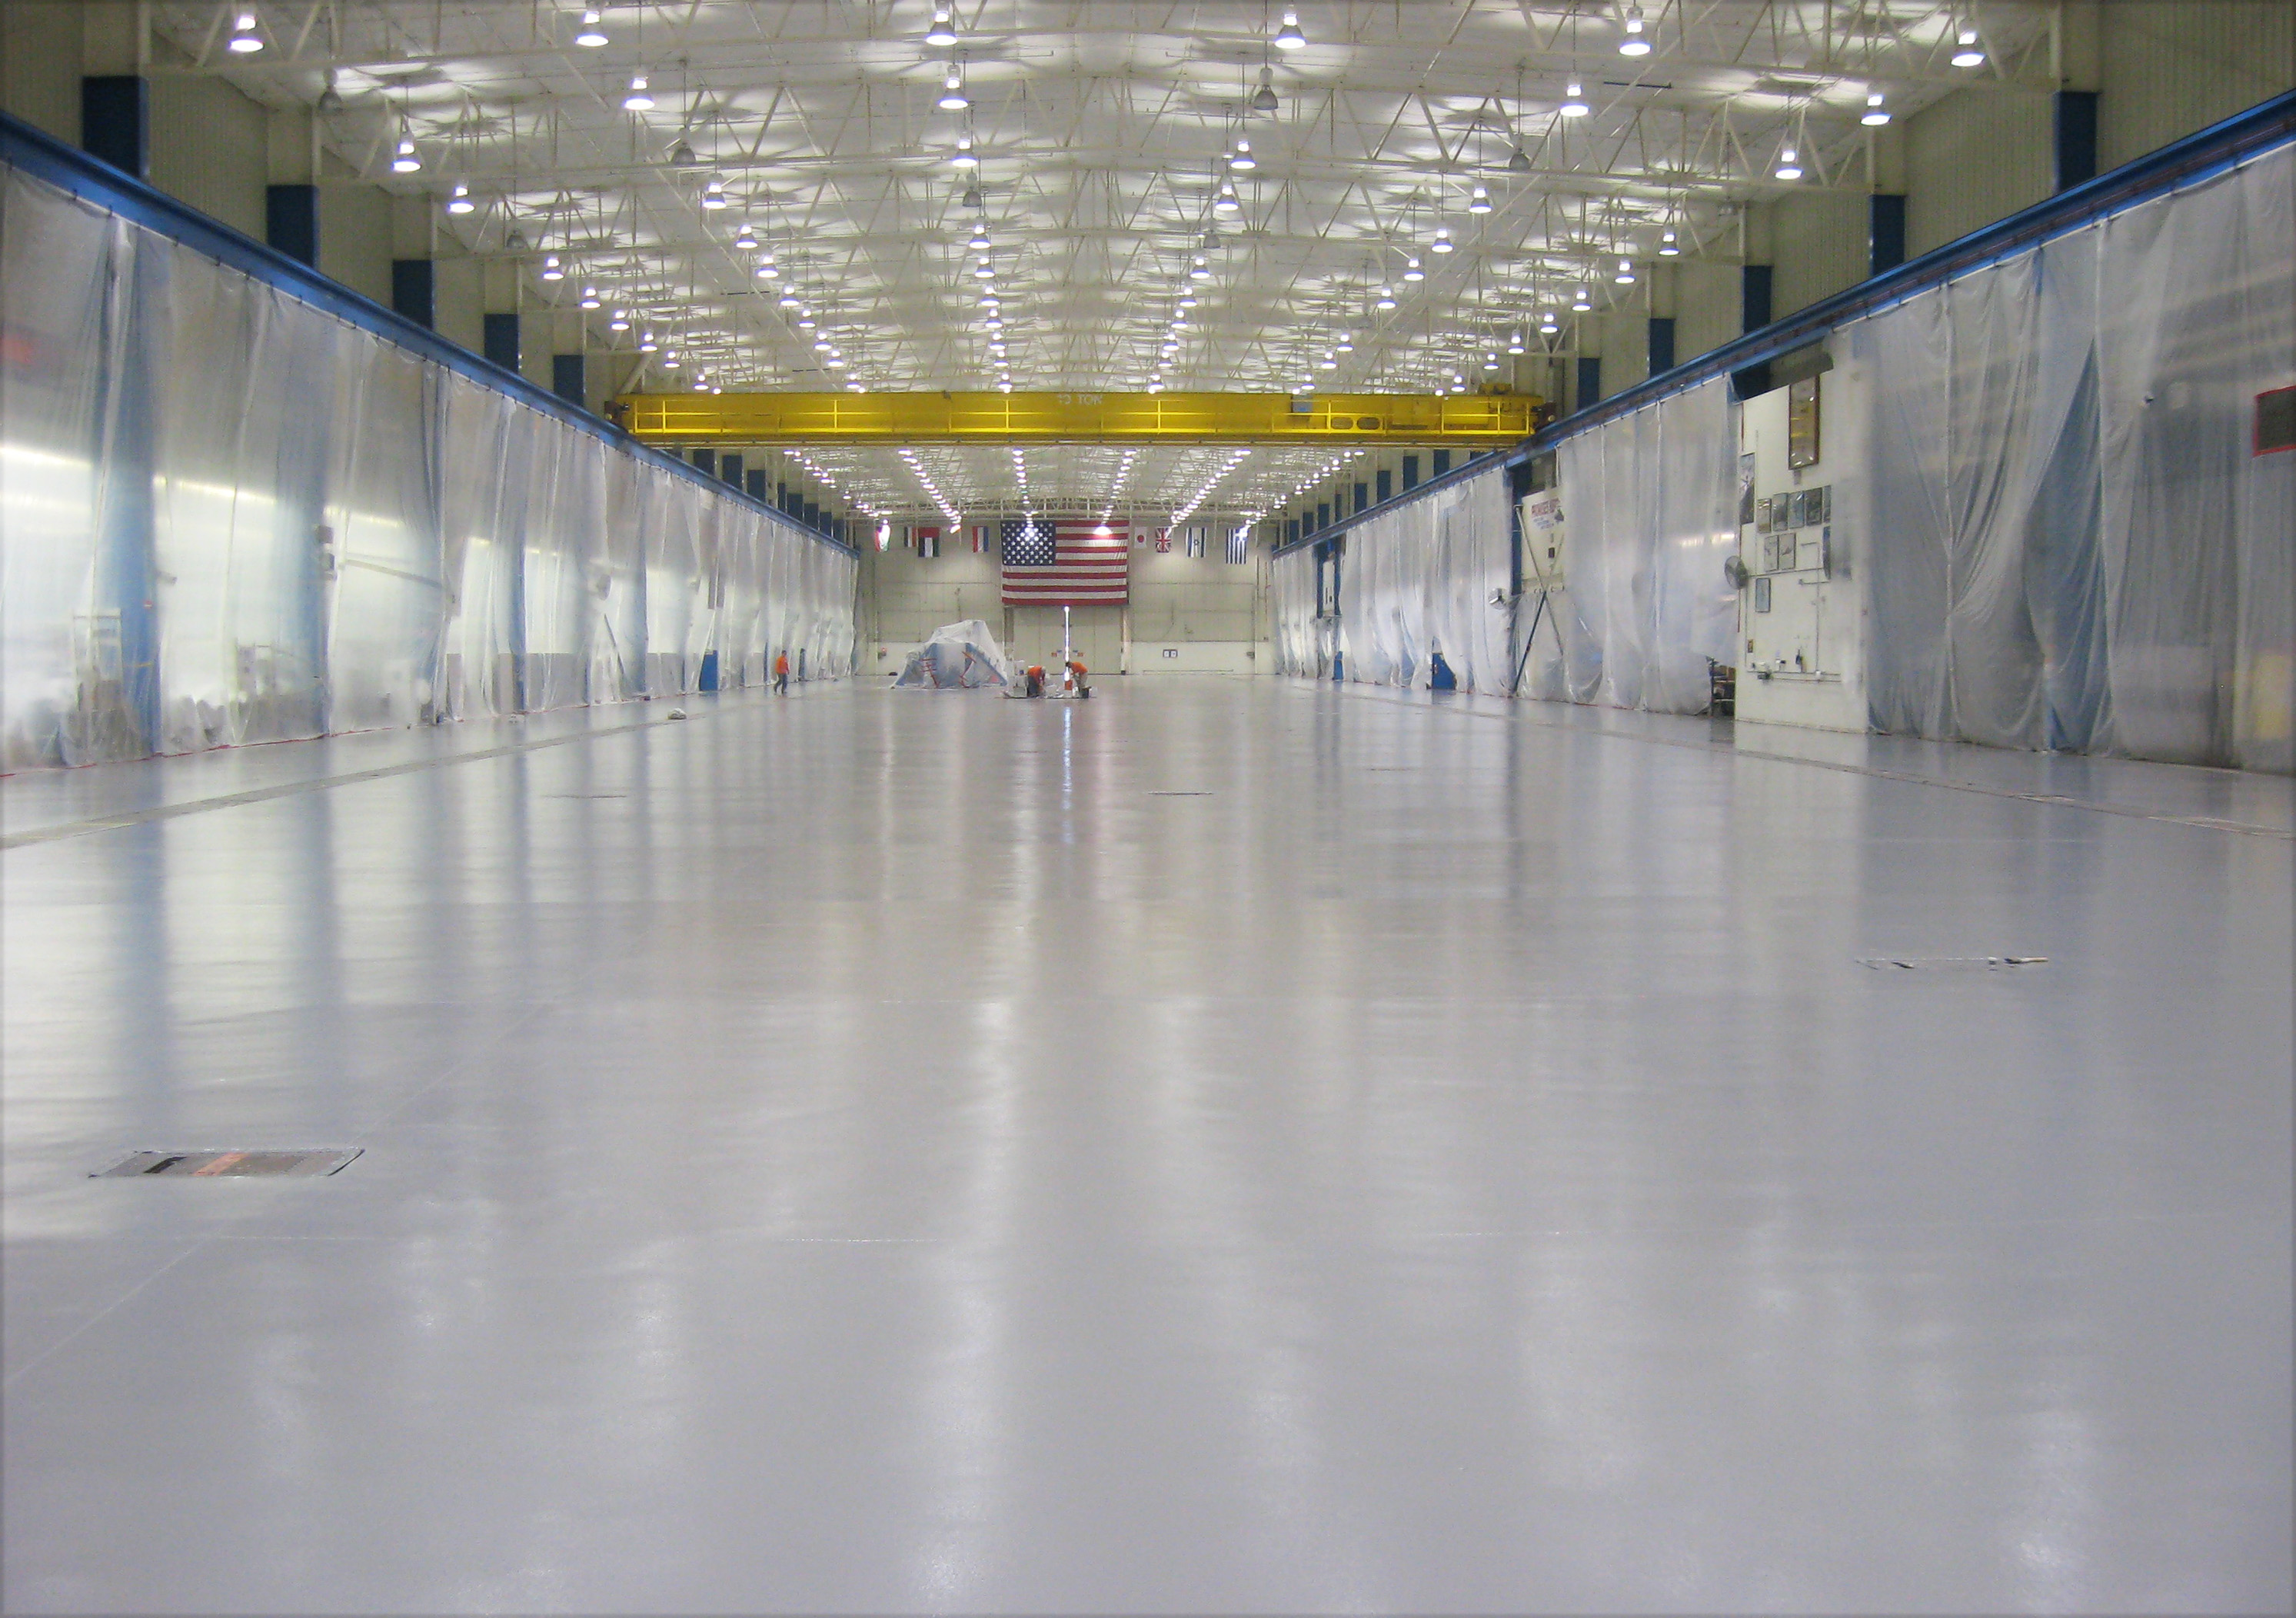 Aerospace flooring durable epoxy seamless clean